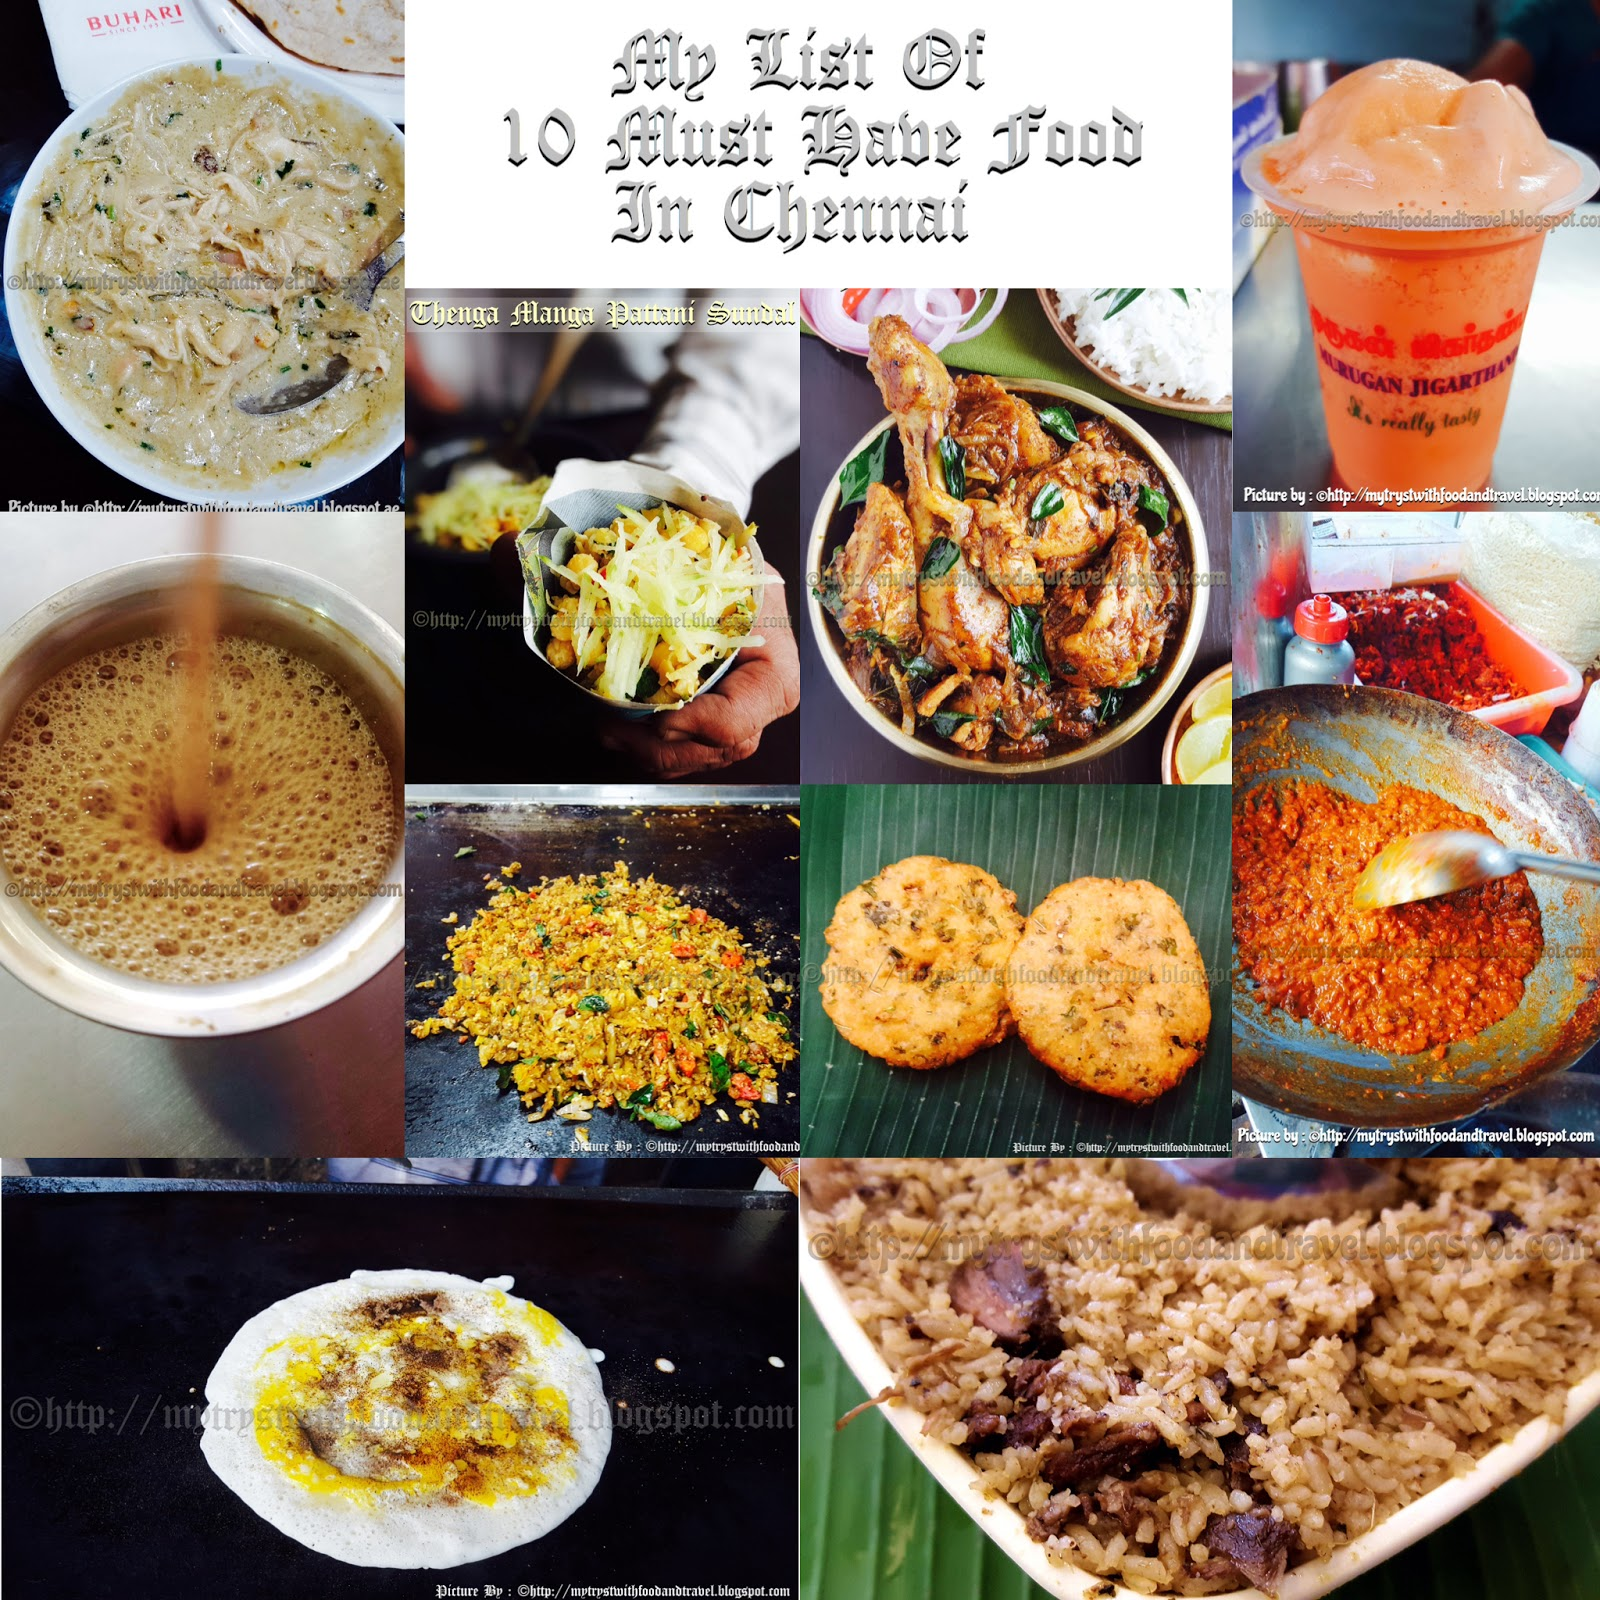 My tryst with food and travel 10 must eat food in chennai my list 10 must eat food in chennai my list 10 famous food of chennai my list of 10 things you must eat in chennai forumfinder Gallery